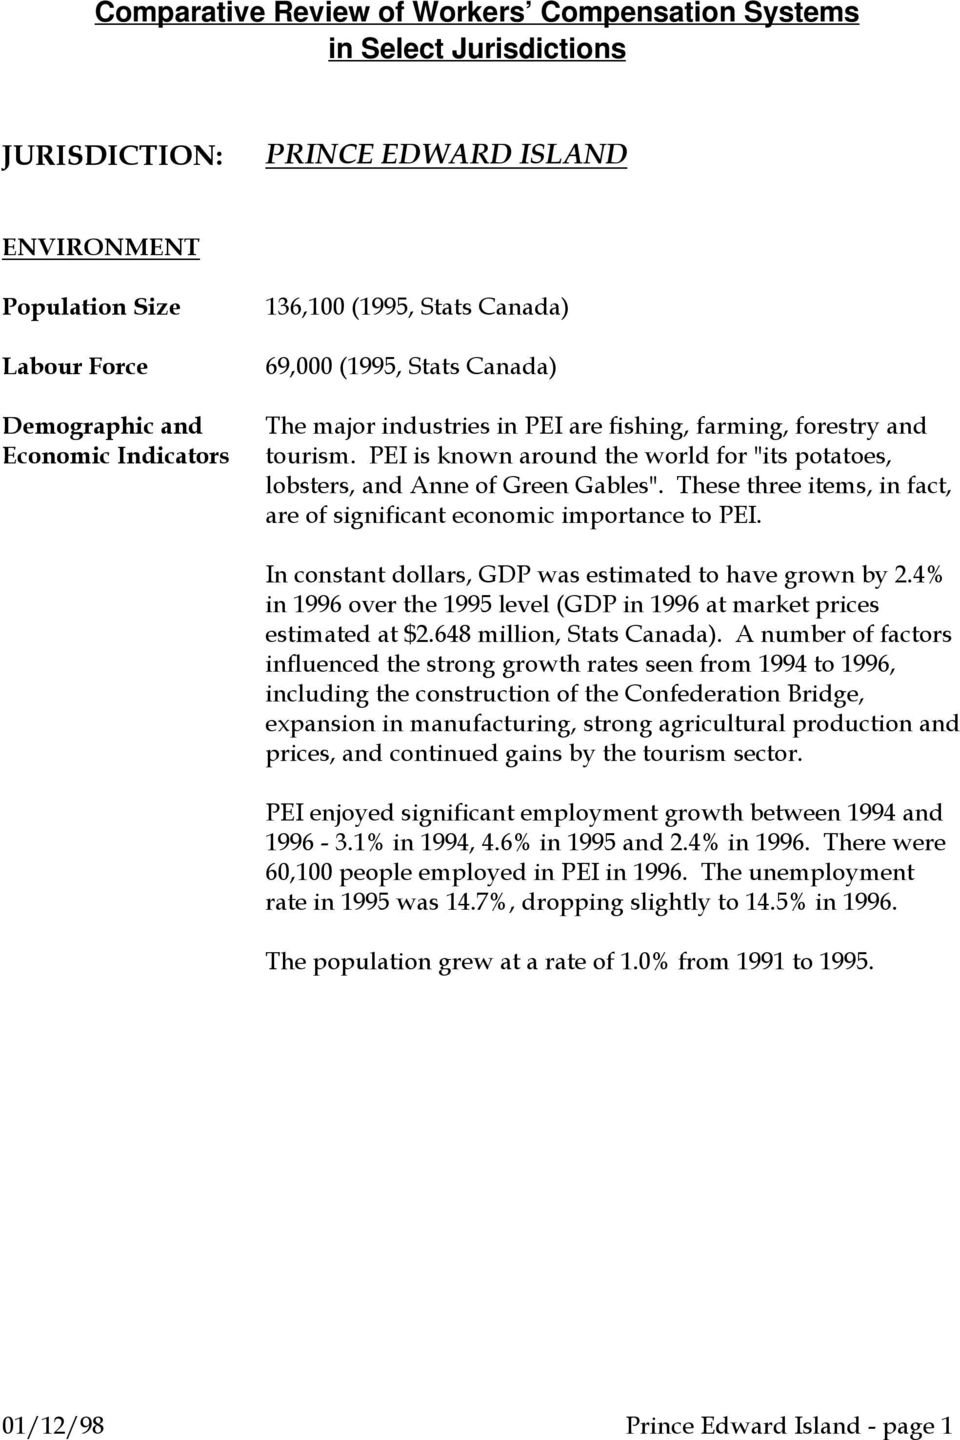 These three items, in fact, are of significant economic importance to PEI. In constant dollars, GDP was estimated to have grown by 2.